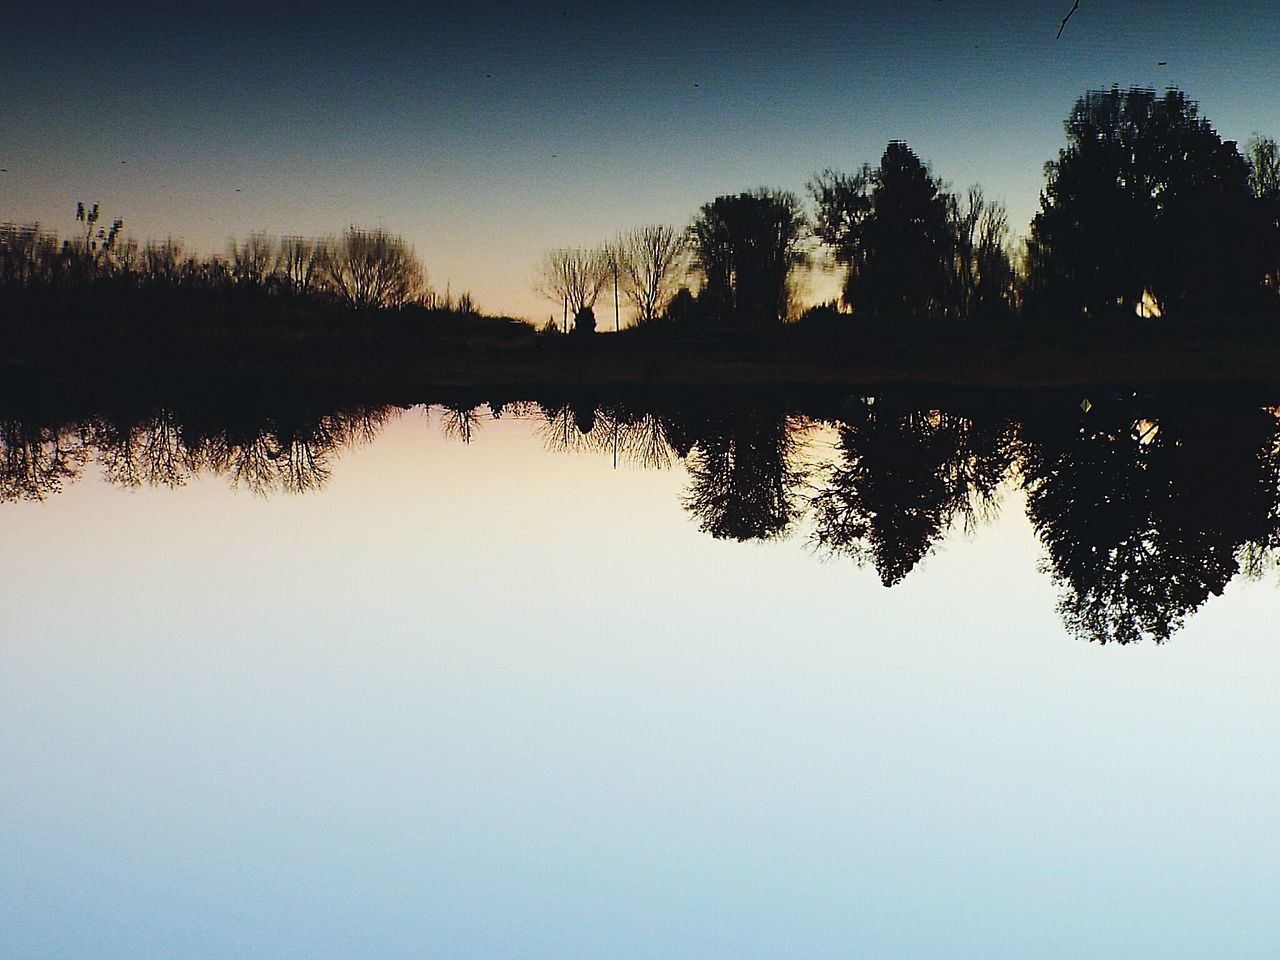 Reflection Of Silhouette Trees On Calm Lake Against Clear Sky During Sunset